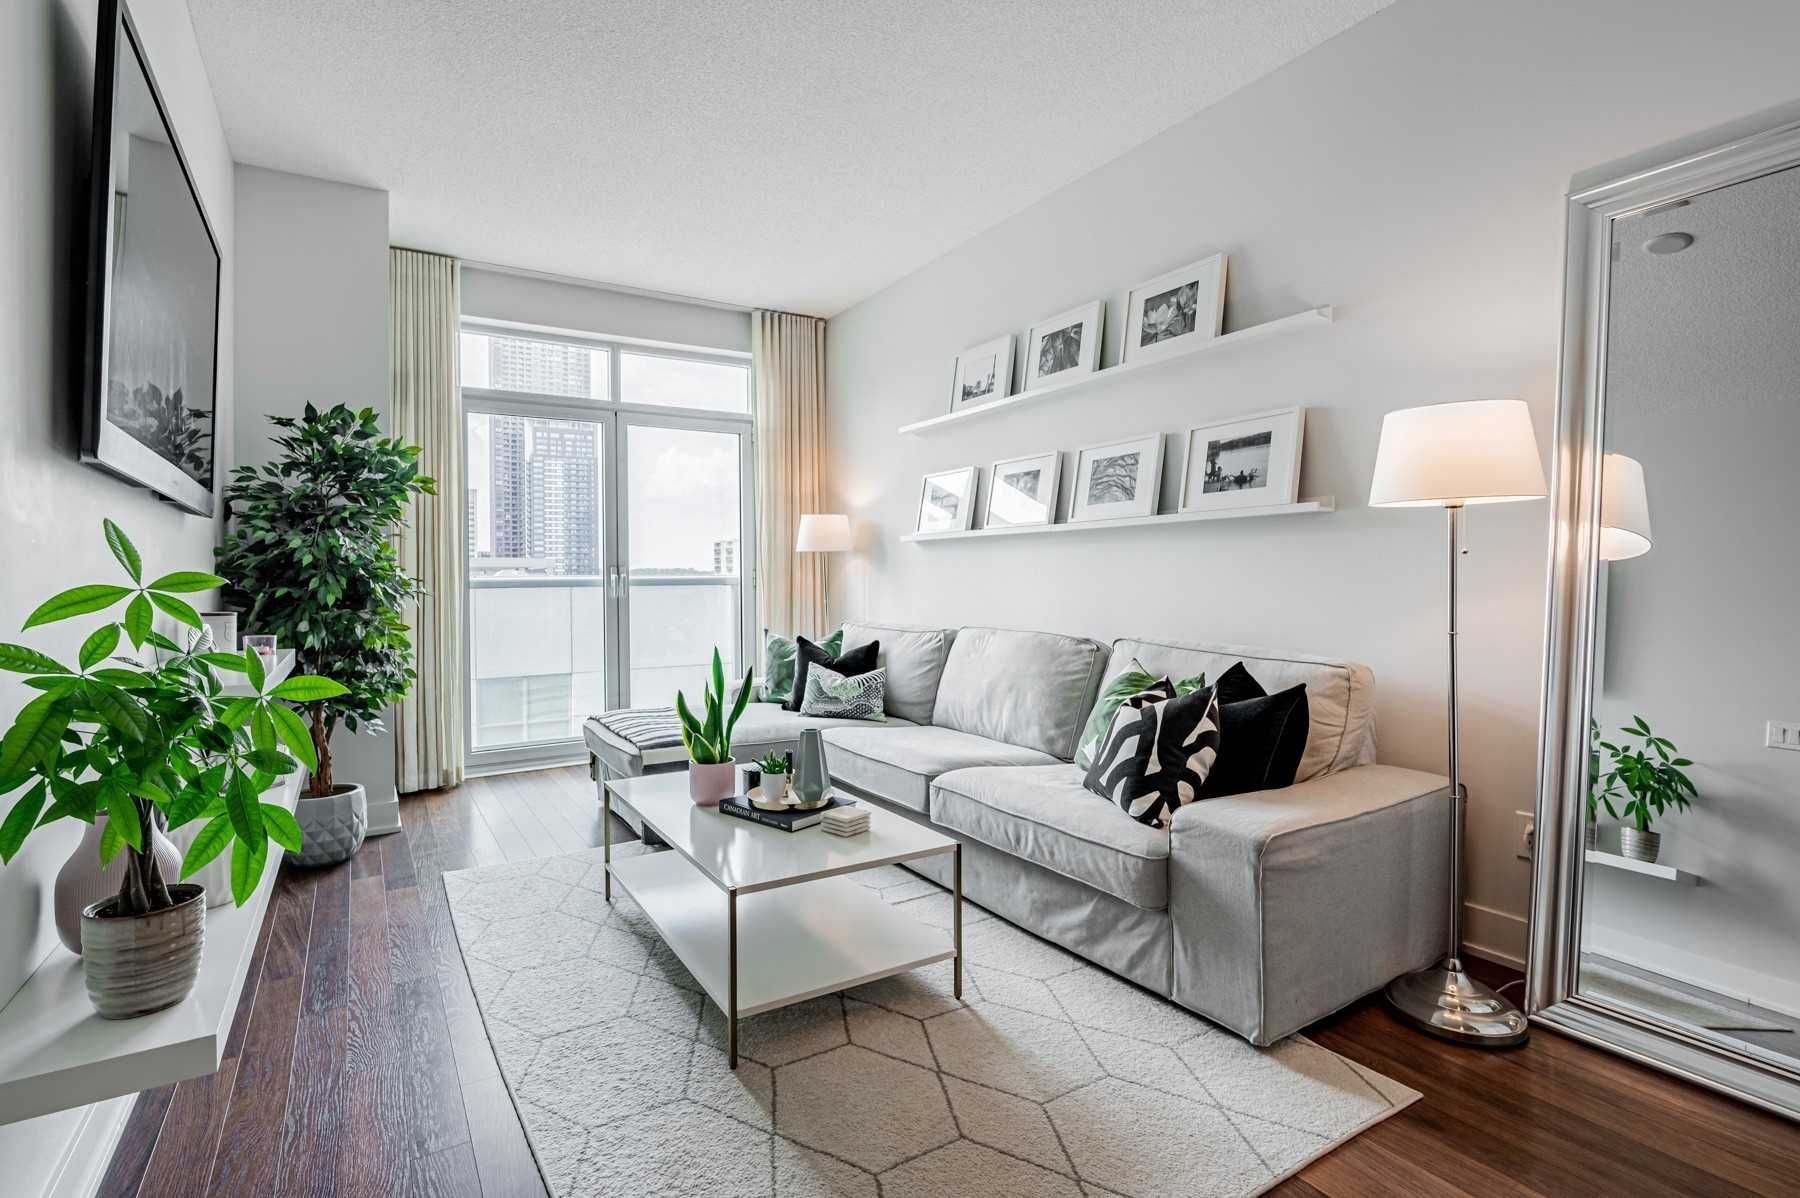 120 Homewood Ave, unit 1002 for sale in Toronto - image #1